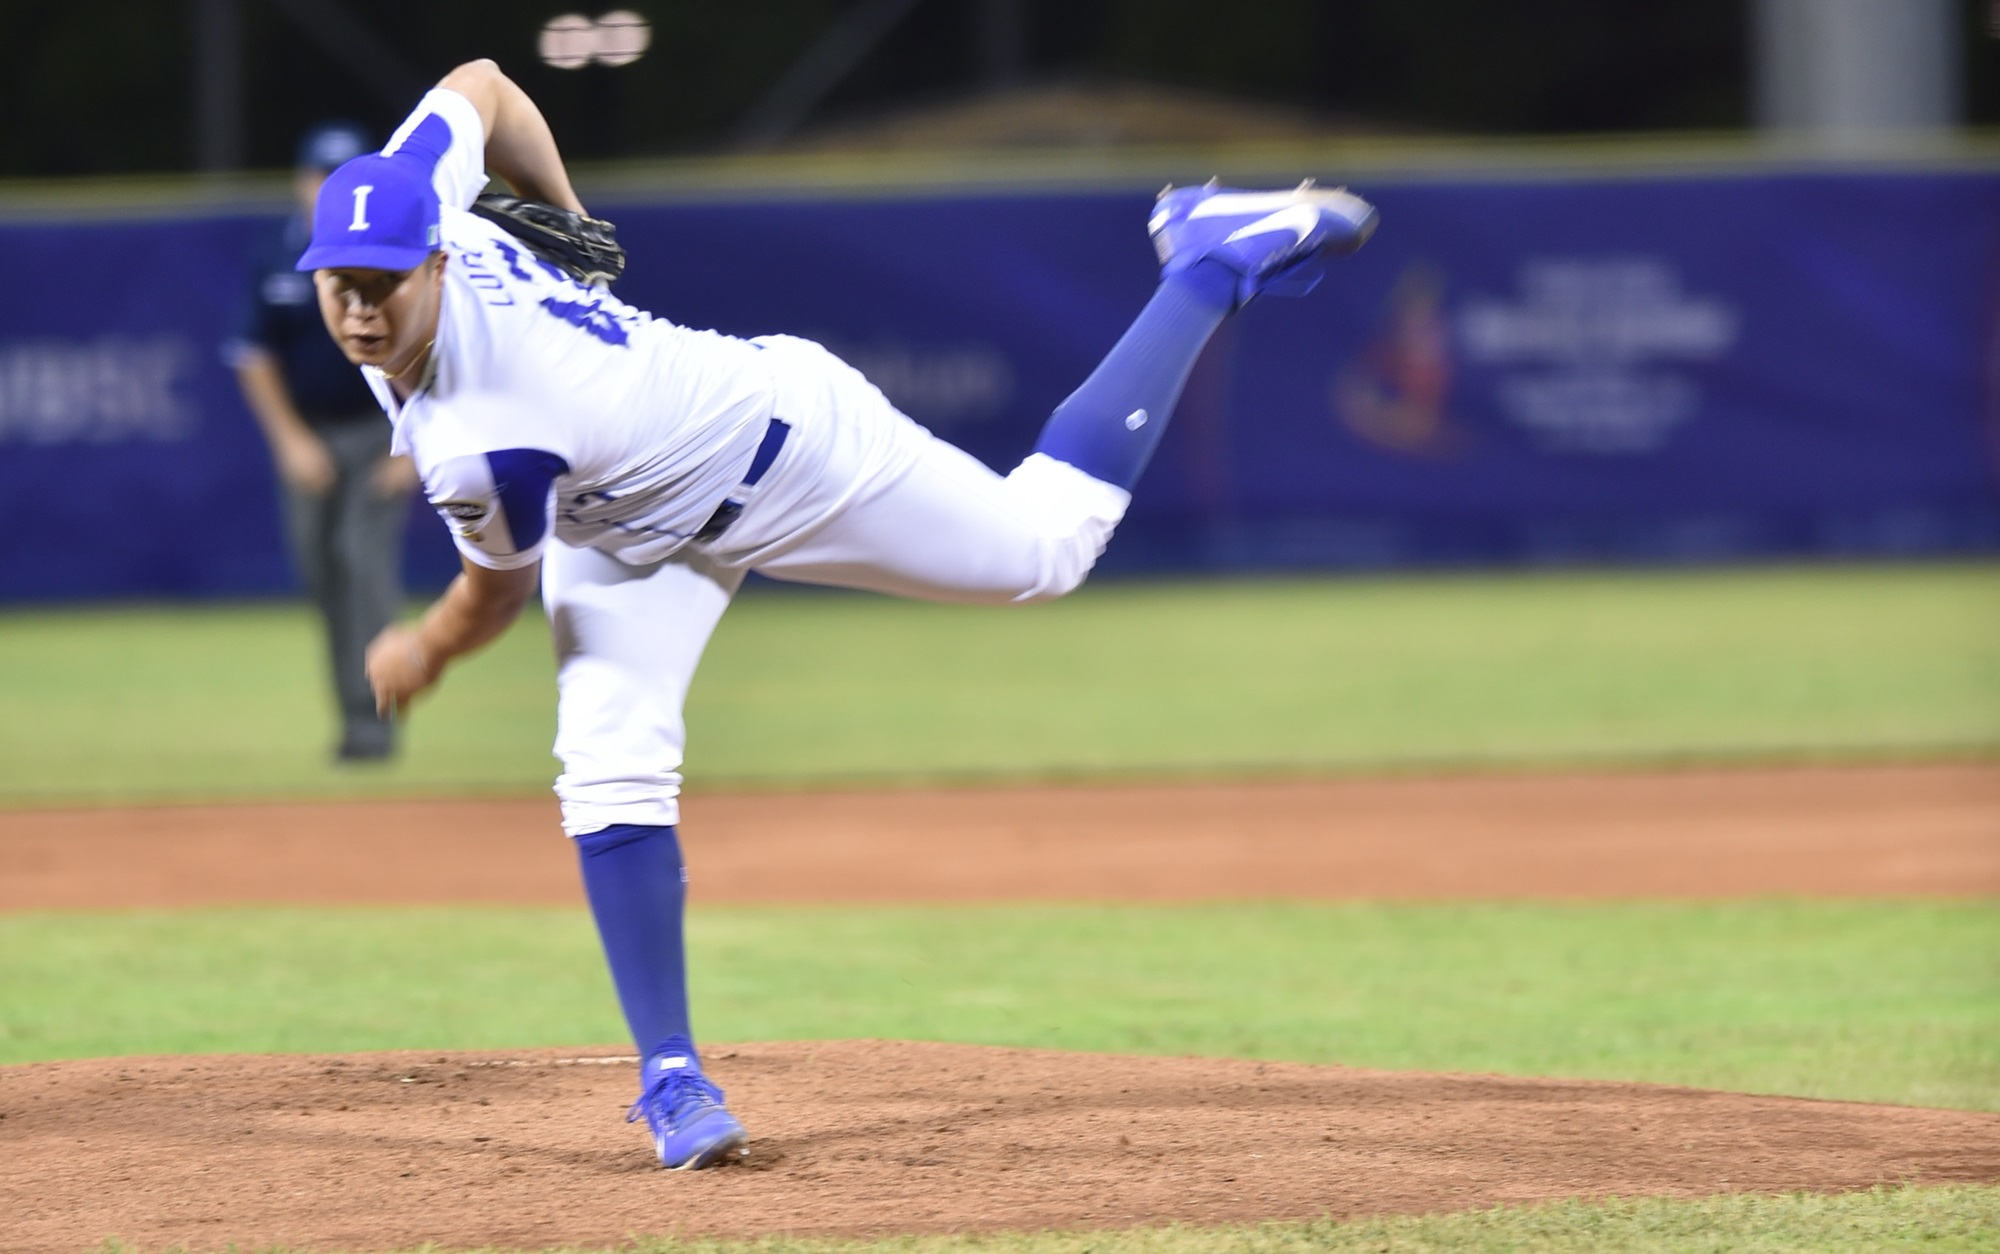 Luis Lugo pitched seven strong innings for Italy